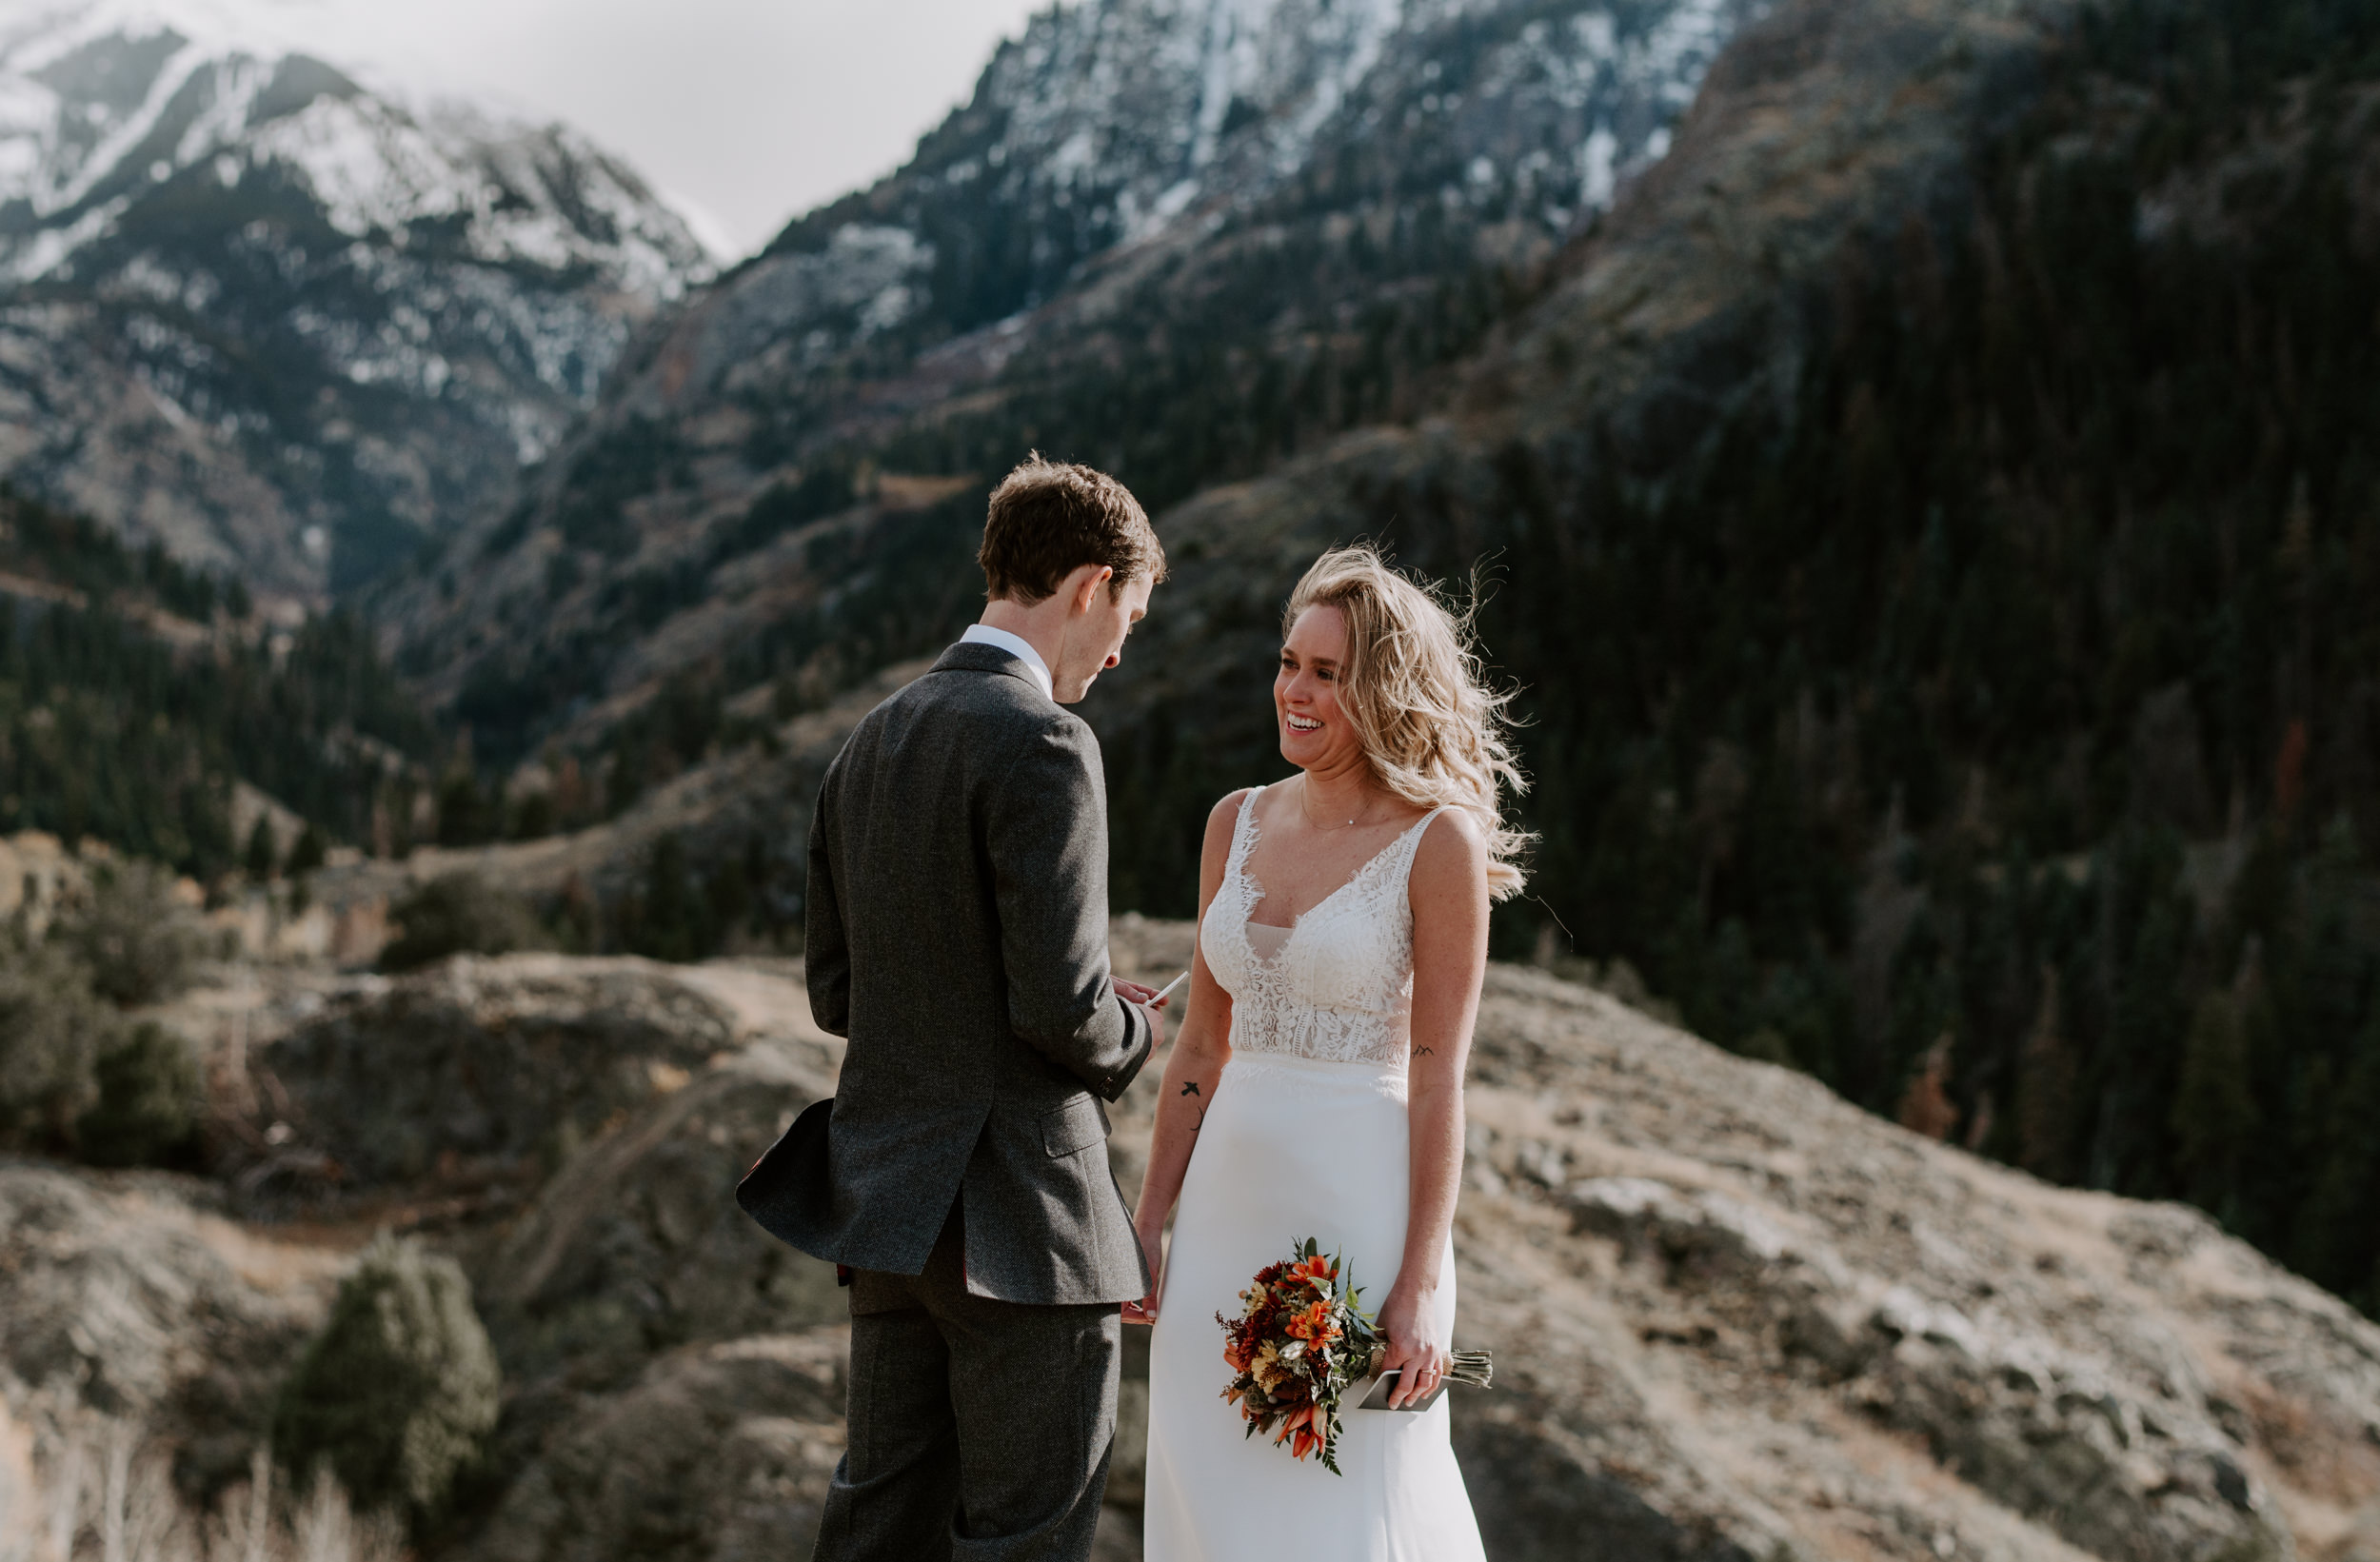 Ouray, Colorado intimate elopement. Wedding ceremony in the mountains in Ouray, Colorado.